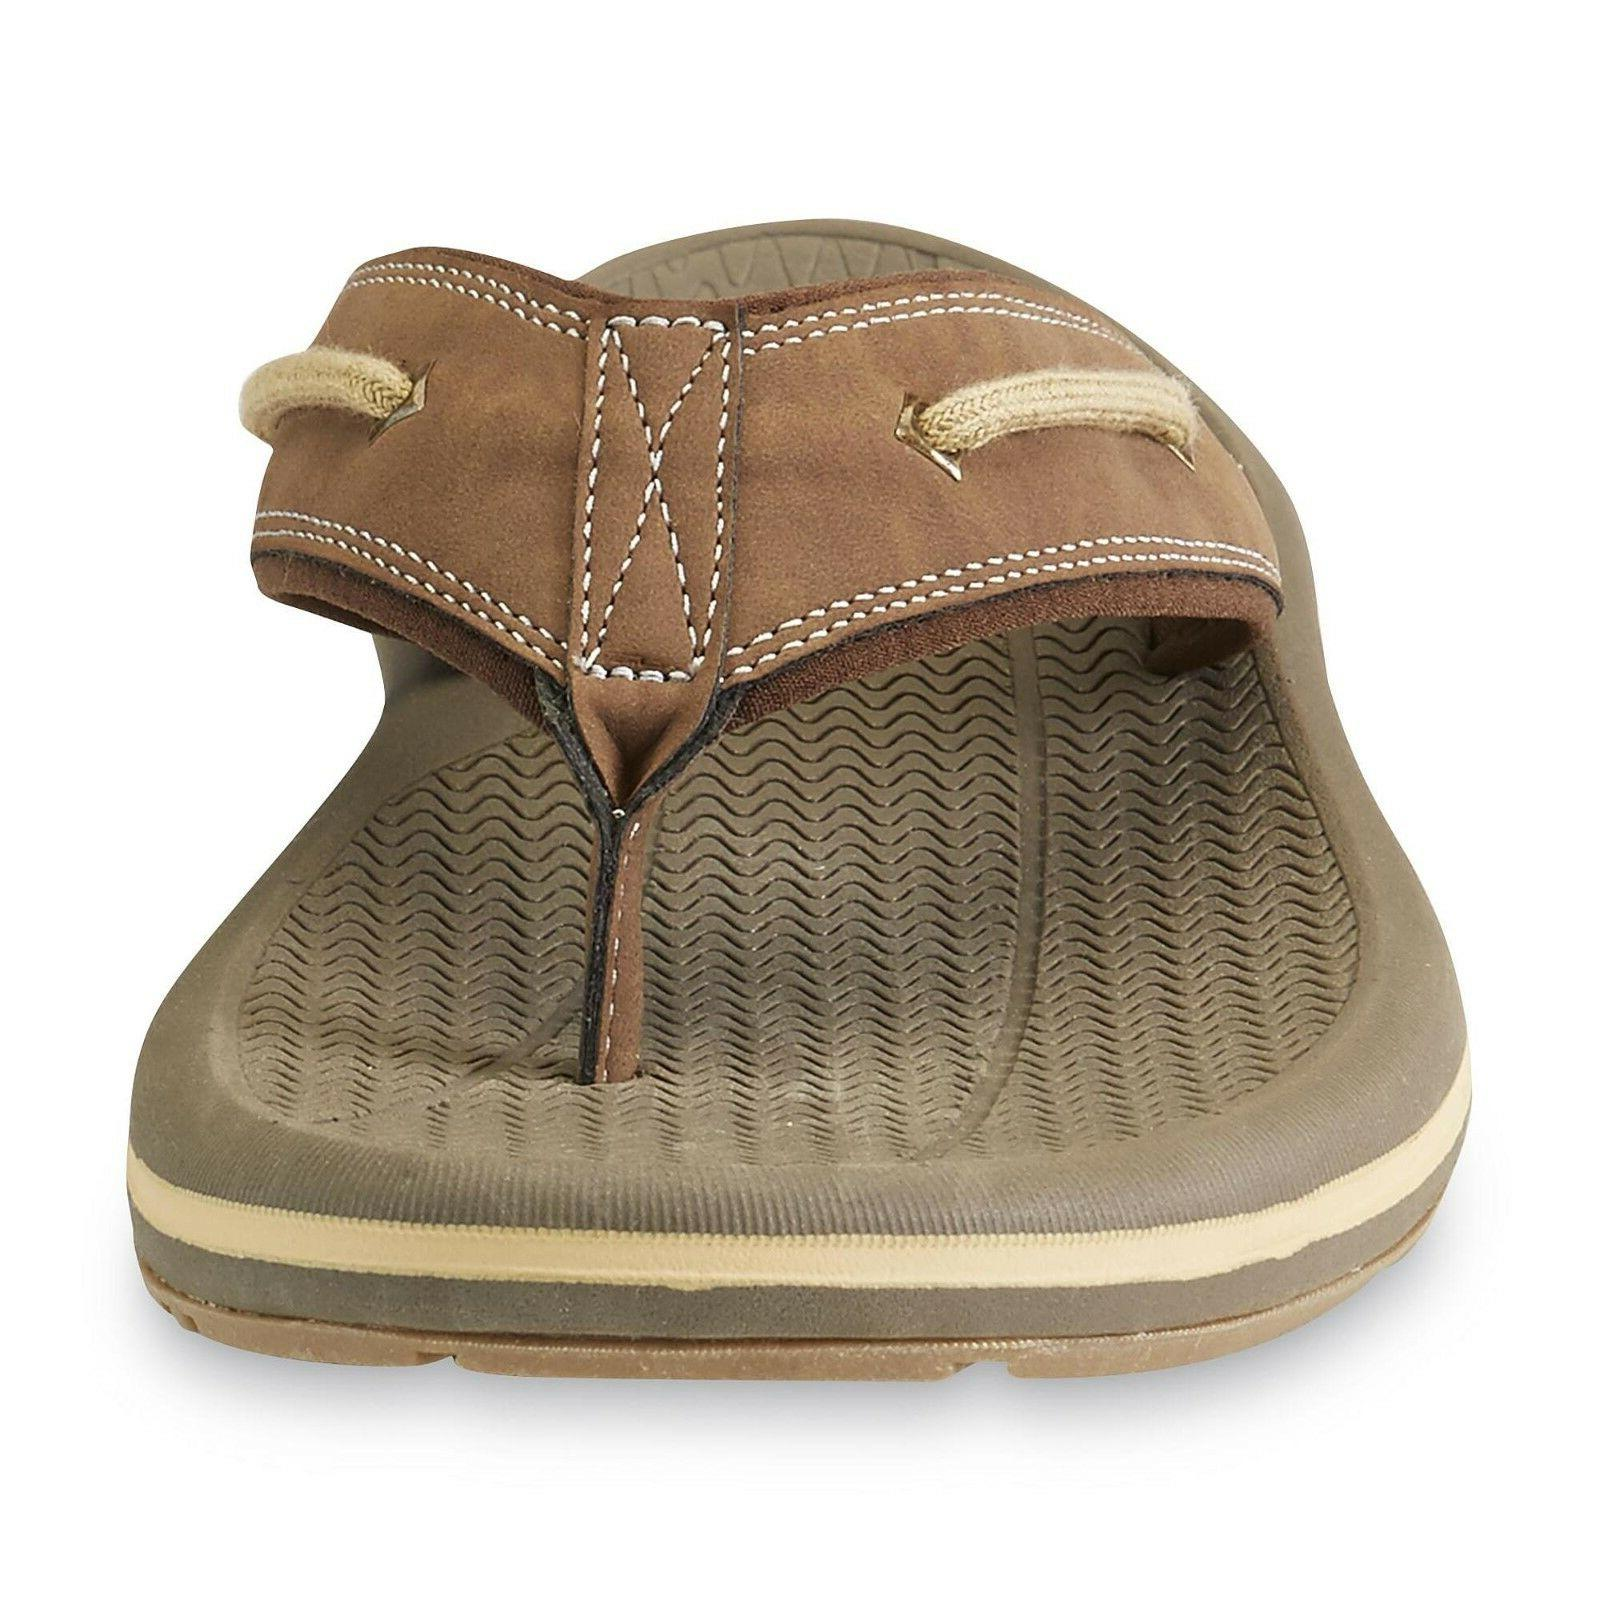 Thom Nautilus 2 Brown Flip-Flop sizes 8-11